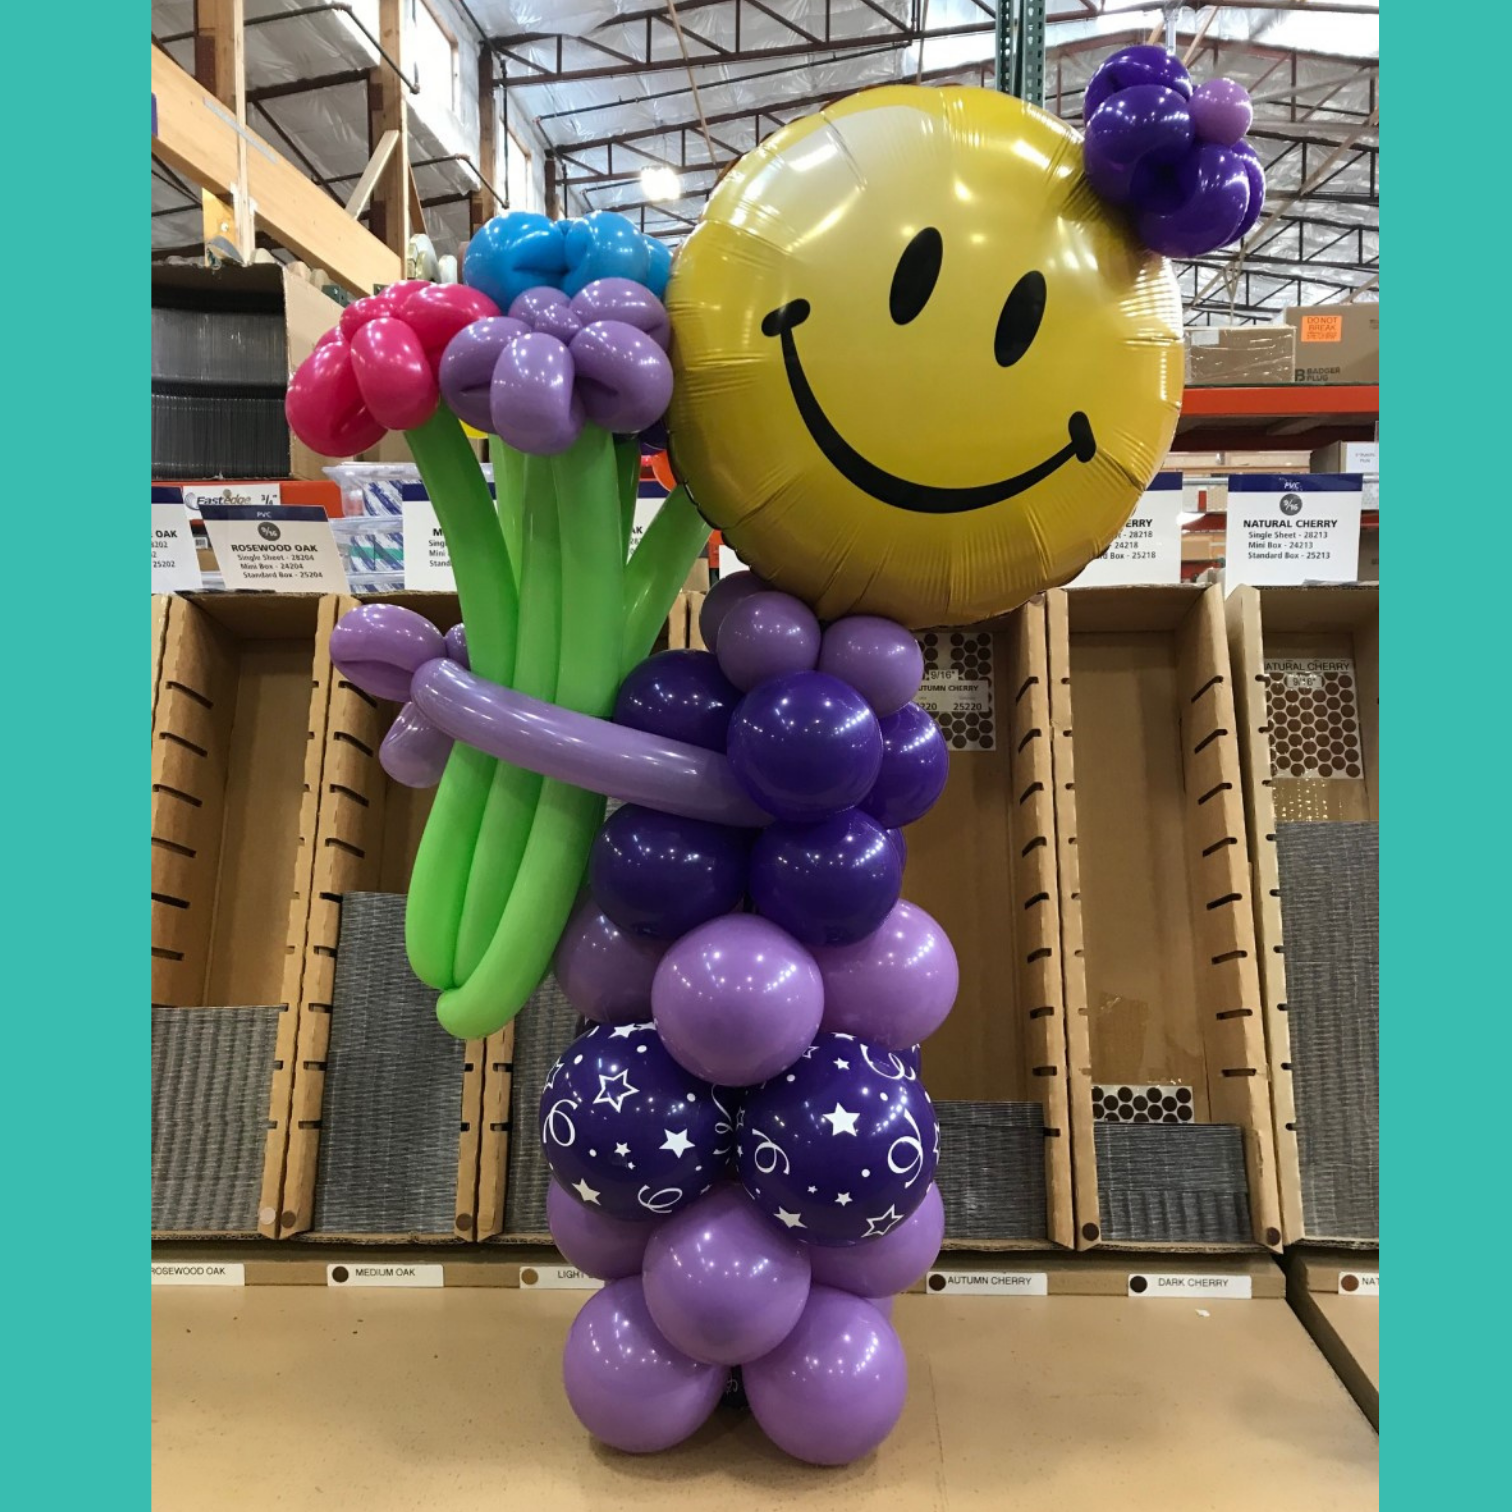 Order Here Mini Share a Smile Balloon Charcter